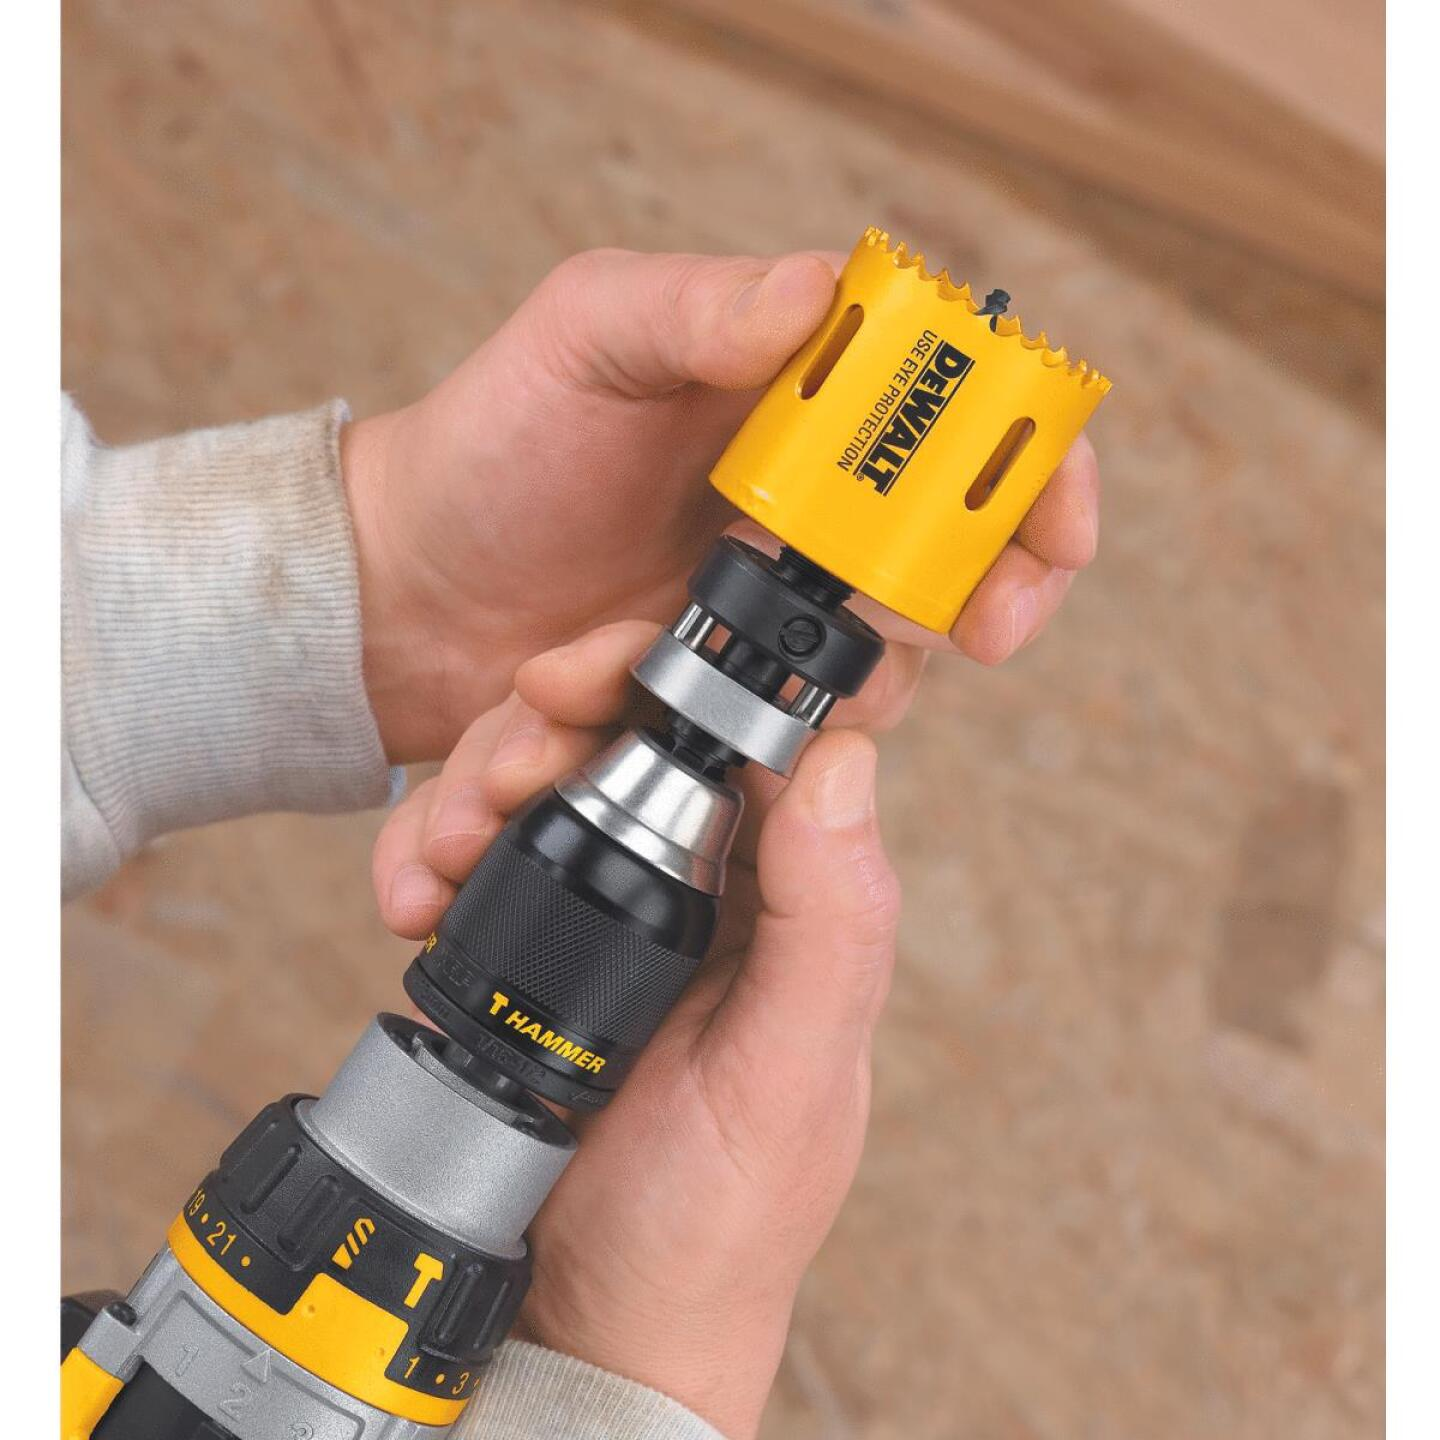 DeWalt 7/16 In. Hex Shank Hole Saw Mandrel Fits Hole Saws Fits Hole Saws 1-1/4 In. to 6 In. Image 2